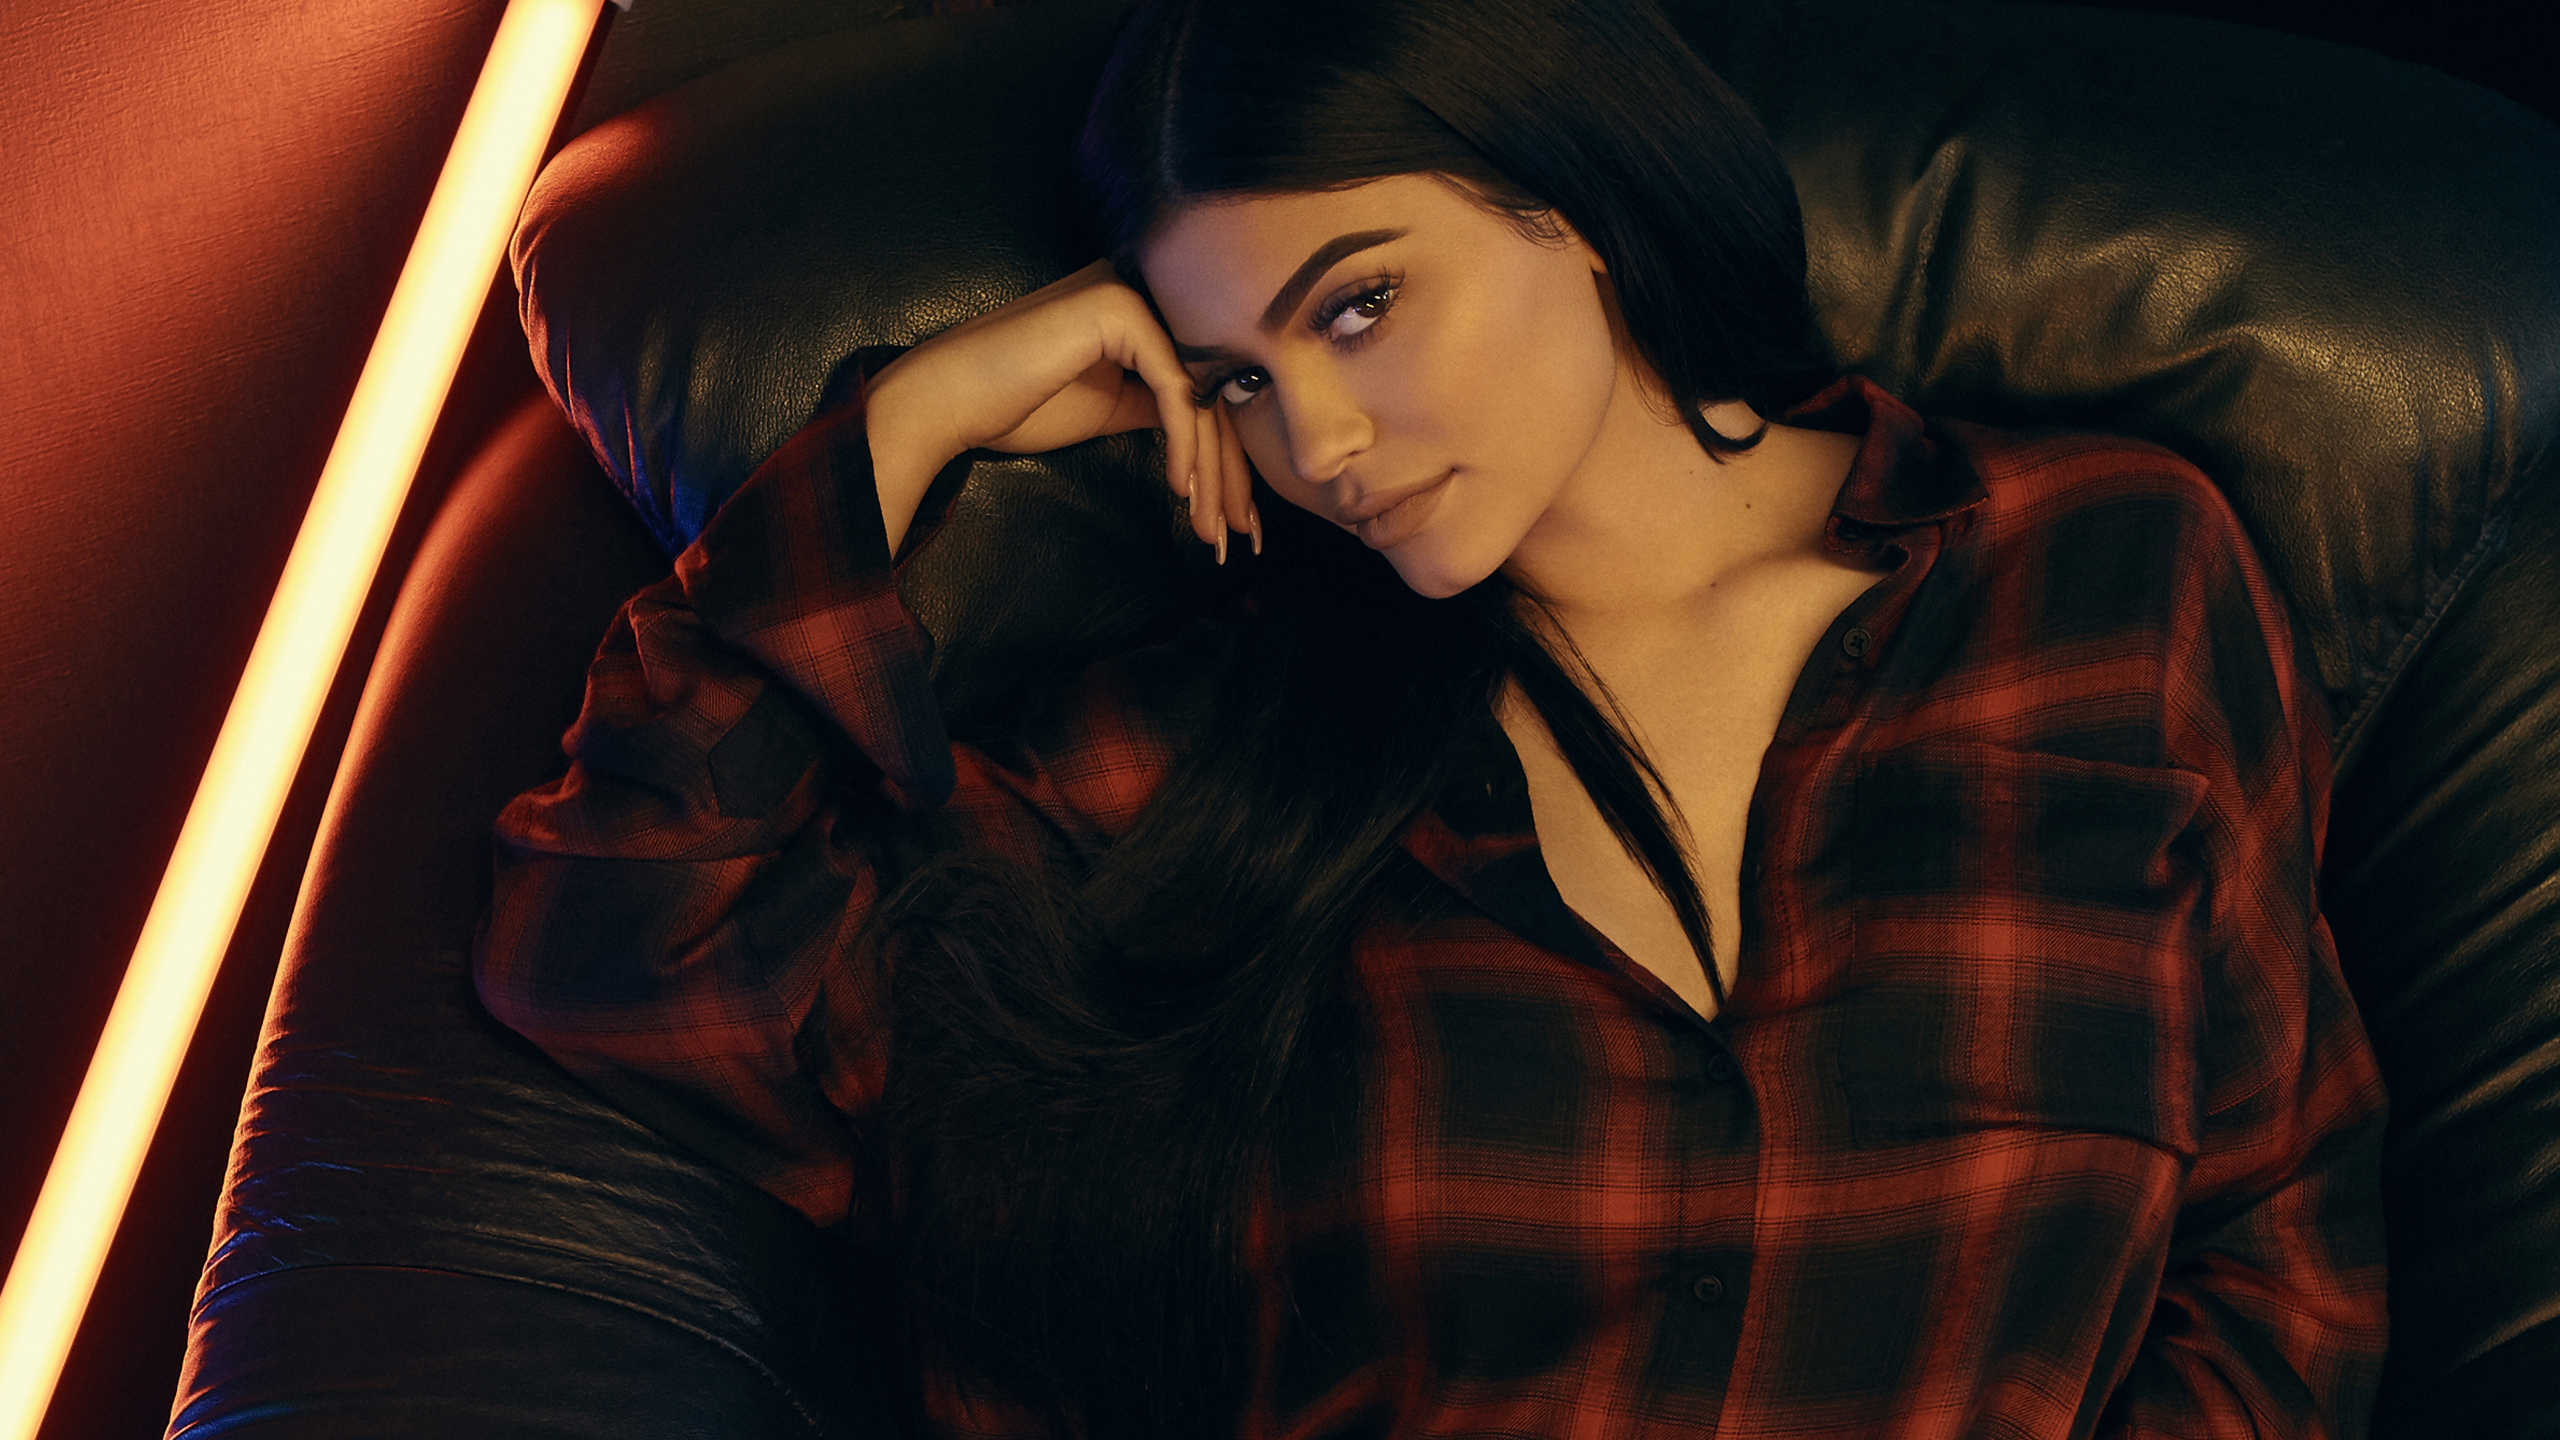 Kylie Jenner 22 Wallpapers